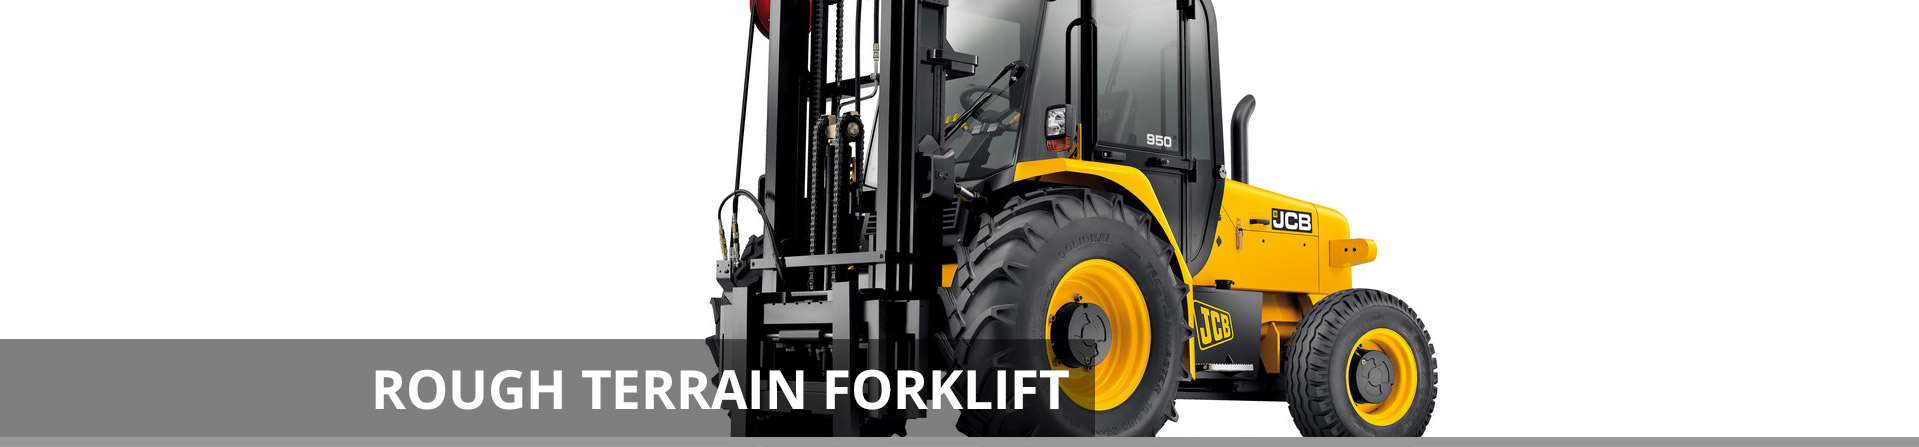 Rough Terrain Forklift Header